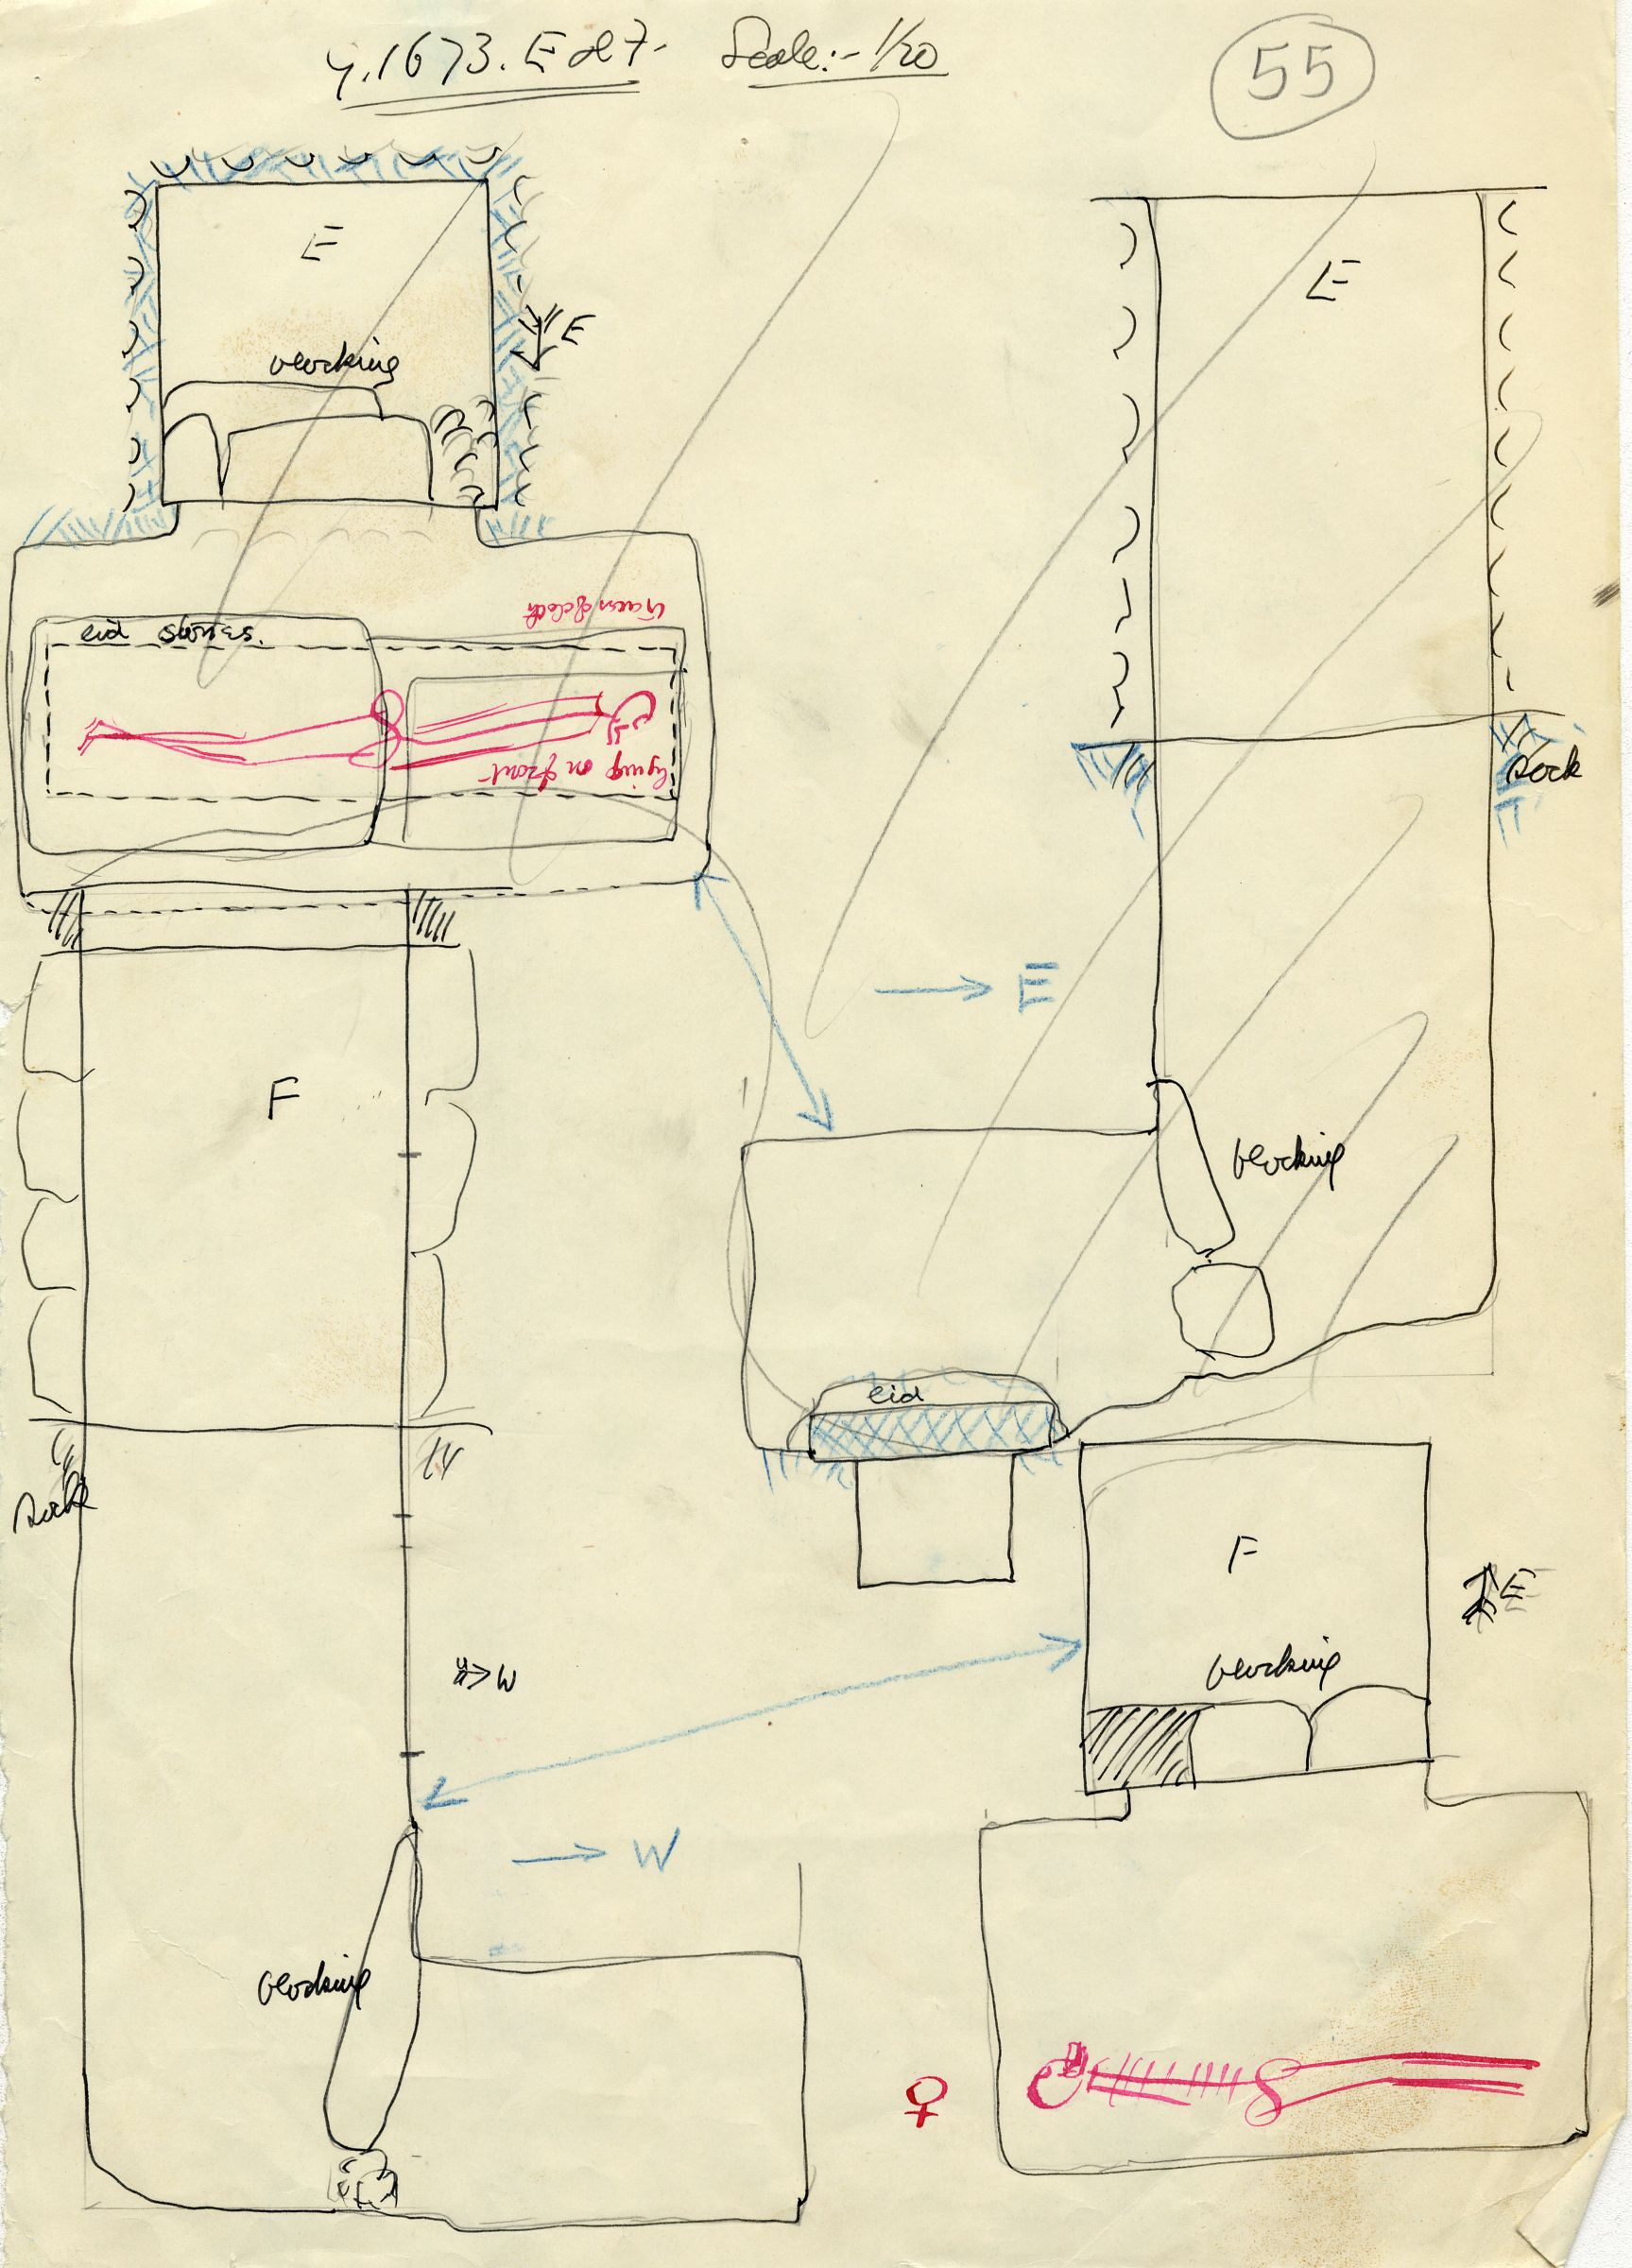 Maps and plans: G 1673, Shaft E and F